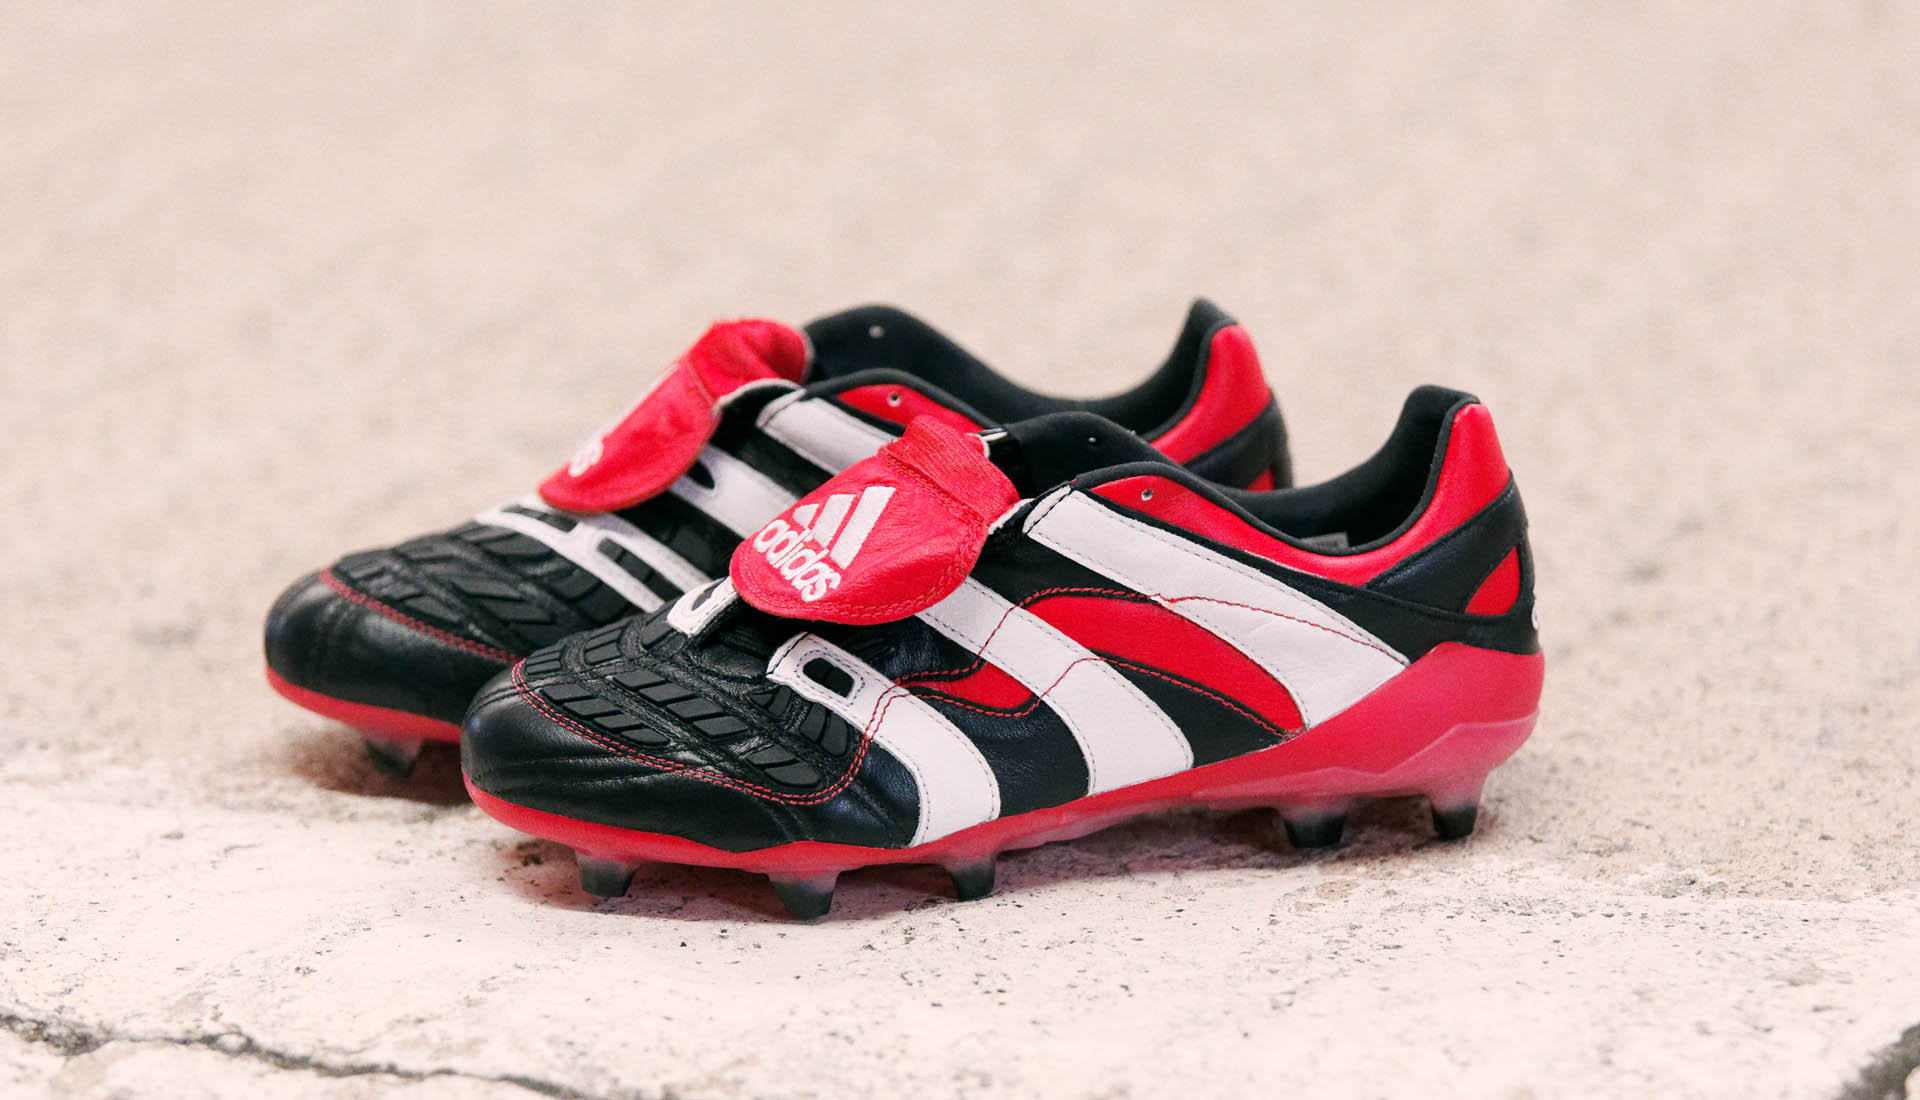 0d4573831d4e Retrospect | A Look At Every adidas Predator Re-release - SoccerBible